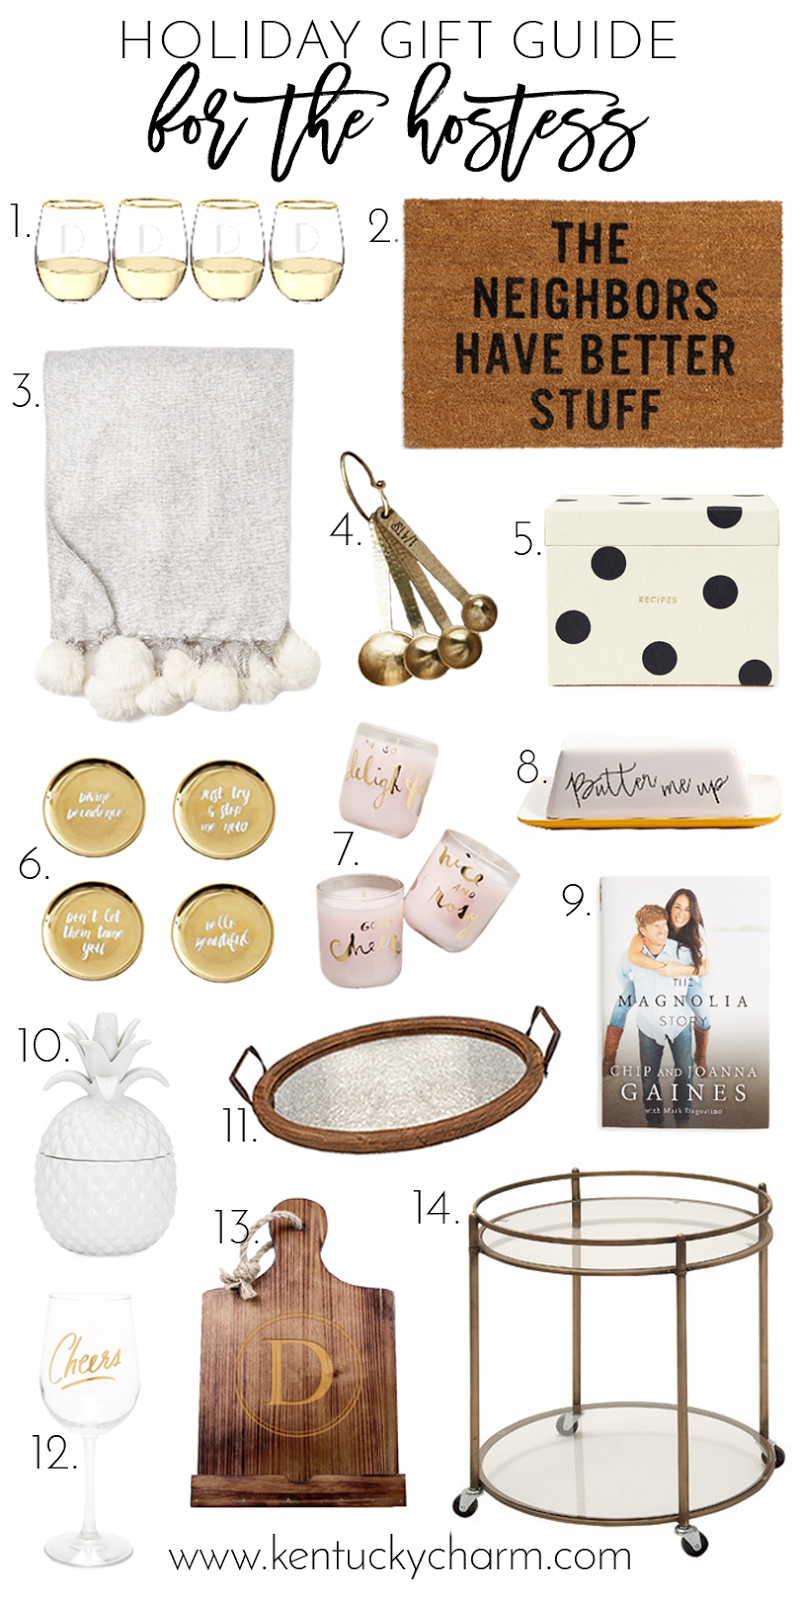 2016 Holiday Gift Guide // For The Hostess // Kentucky Charm